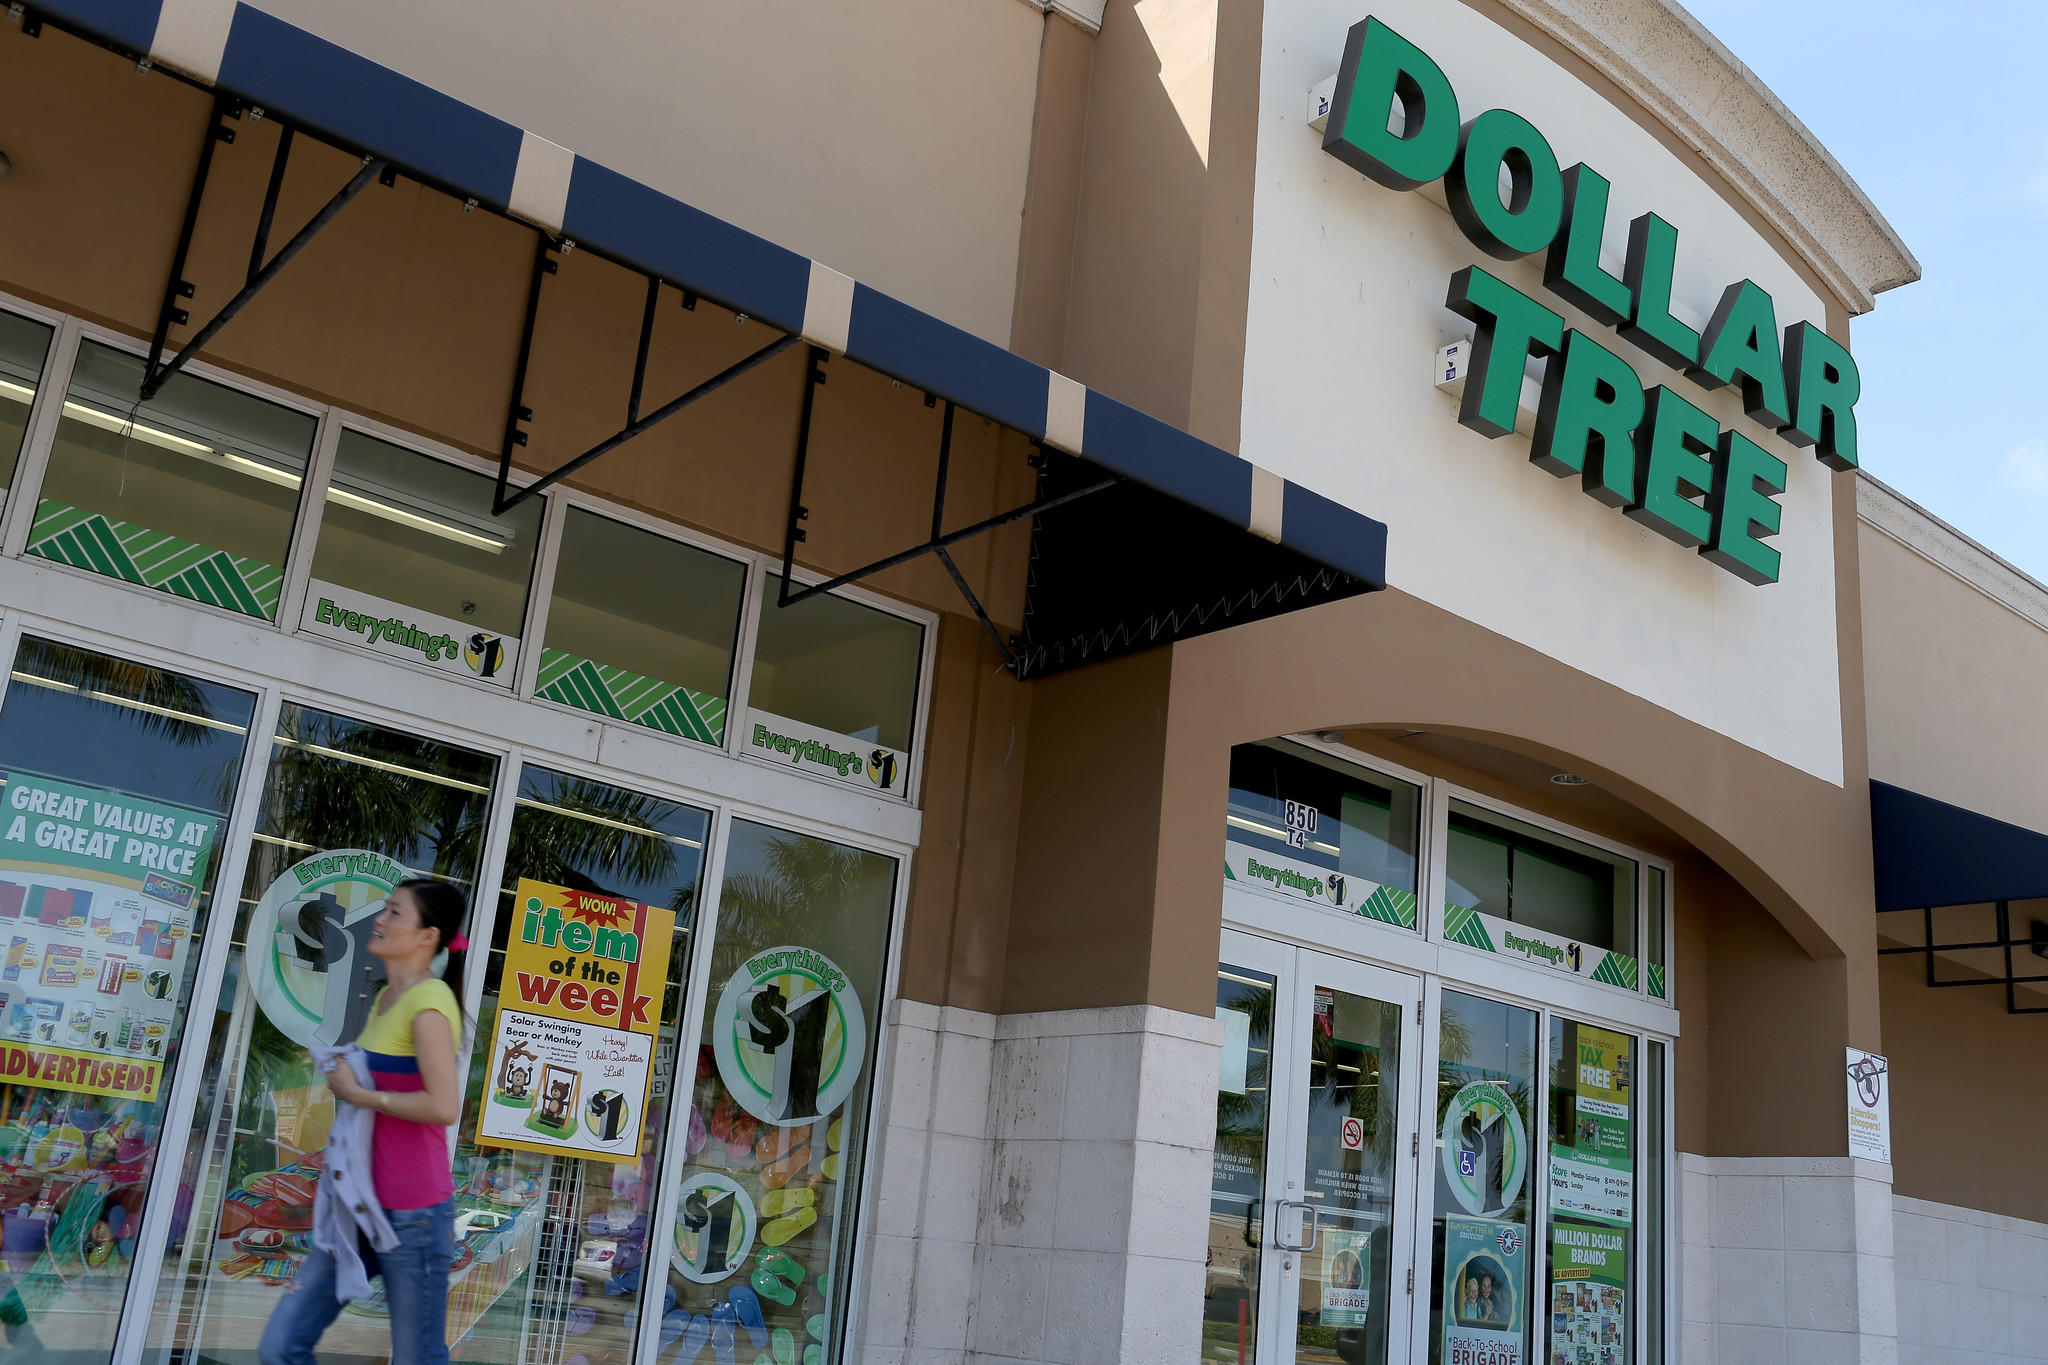 5 days ago · Dollar Tree's biggest problem is the dismal performance of Family Dollar, which is being squeezed by Walmart, Target, and Amazon. Here's how Family Dollar dragged down Dollar Tree.